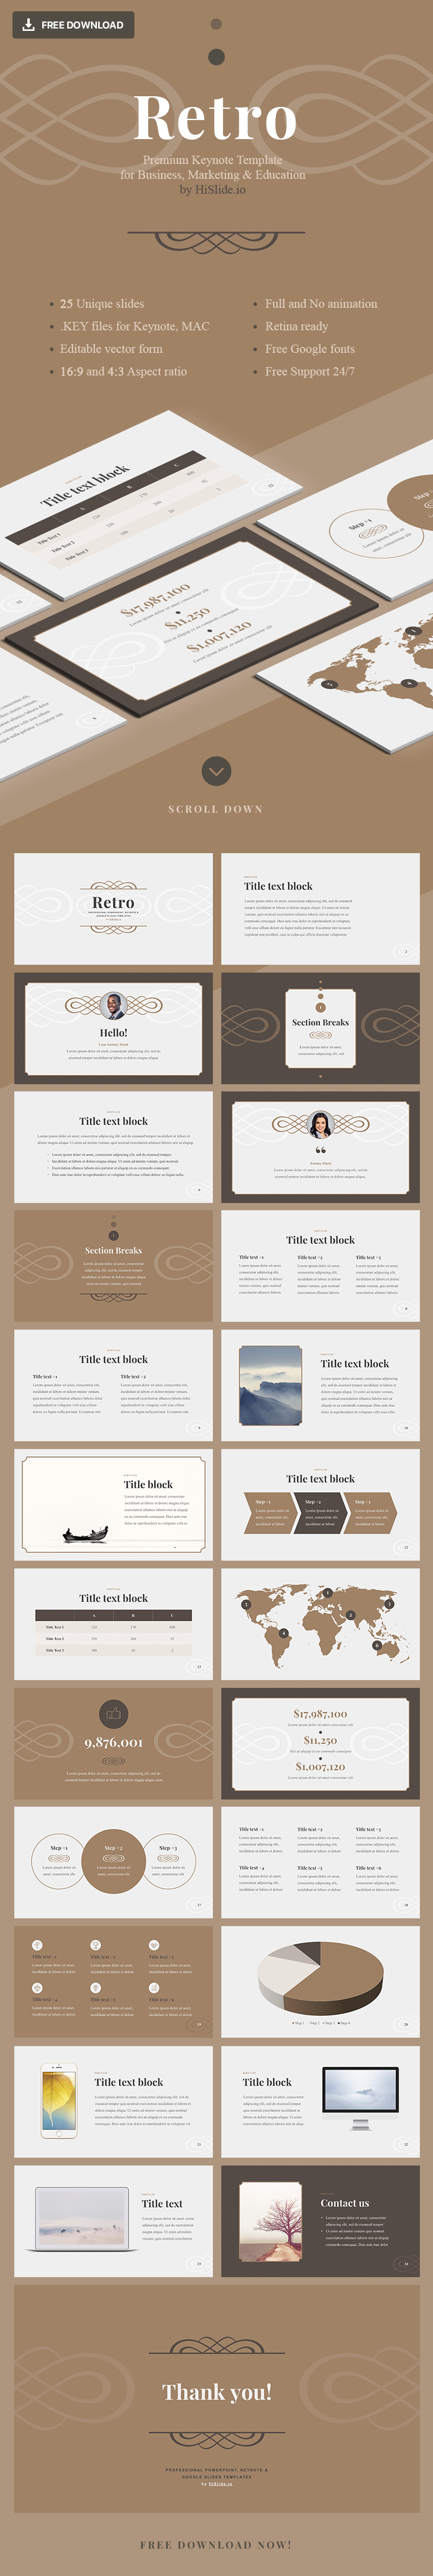 free-retro-templates-for-keynote